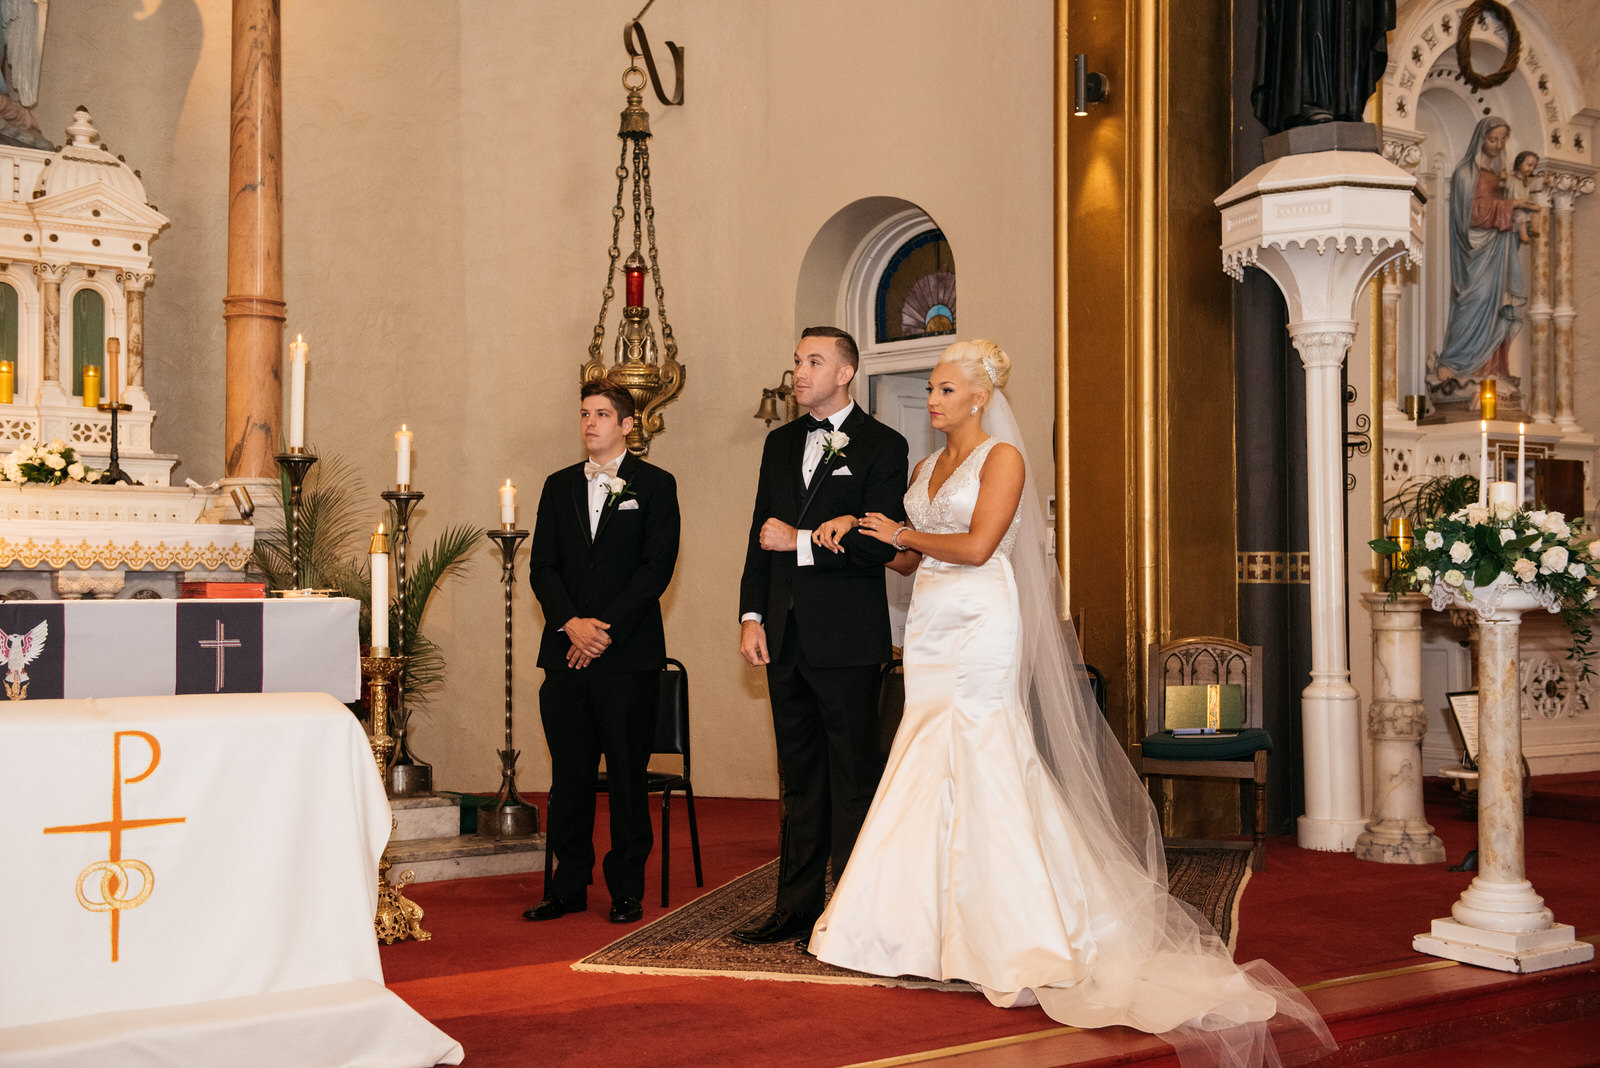 hilton_garden_inn_southpointe_pittsburgh_weddings_39.jpg